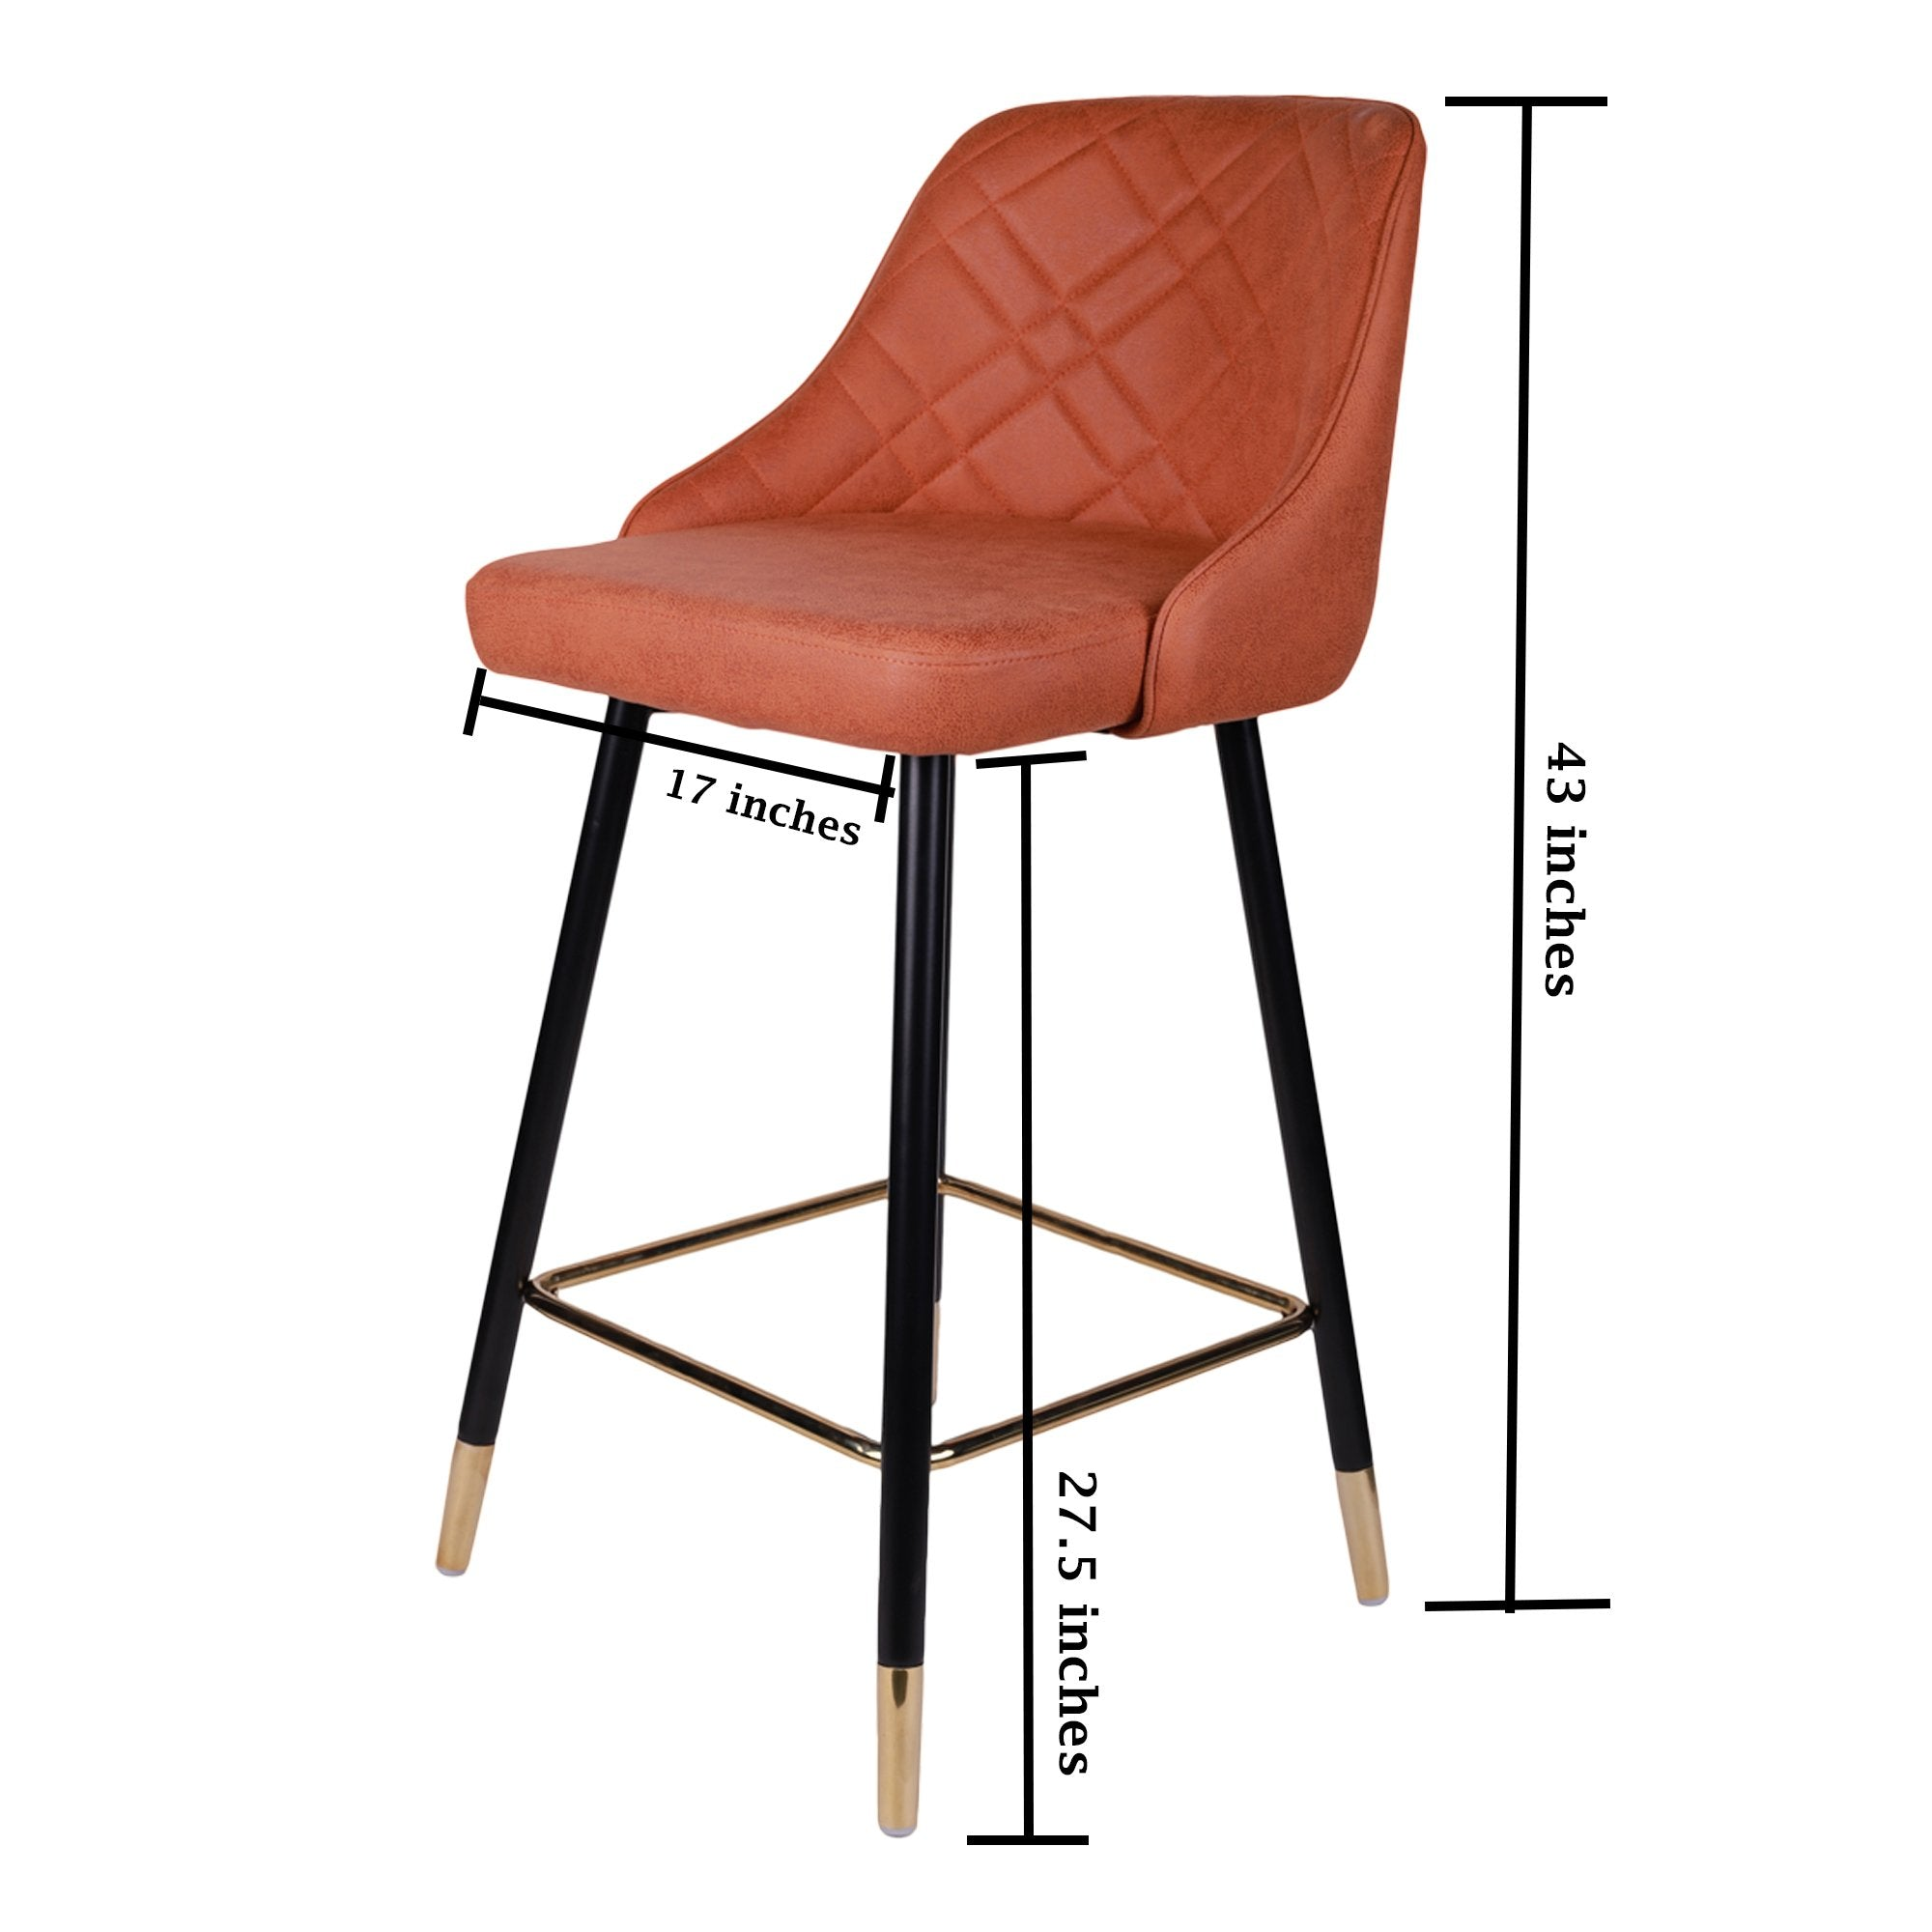 Metallic Orange Colored Bar Chair - Teak Tale